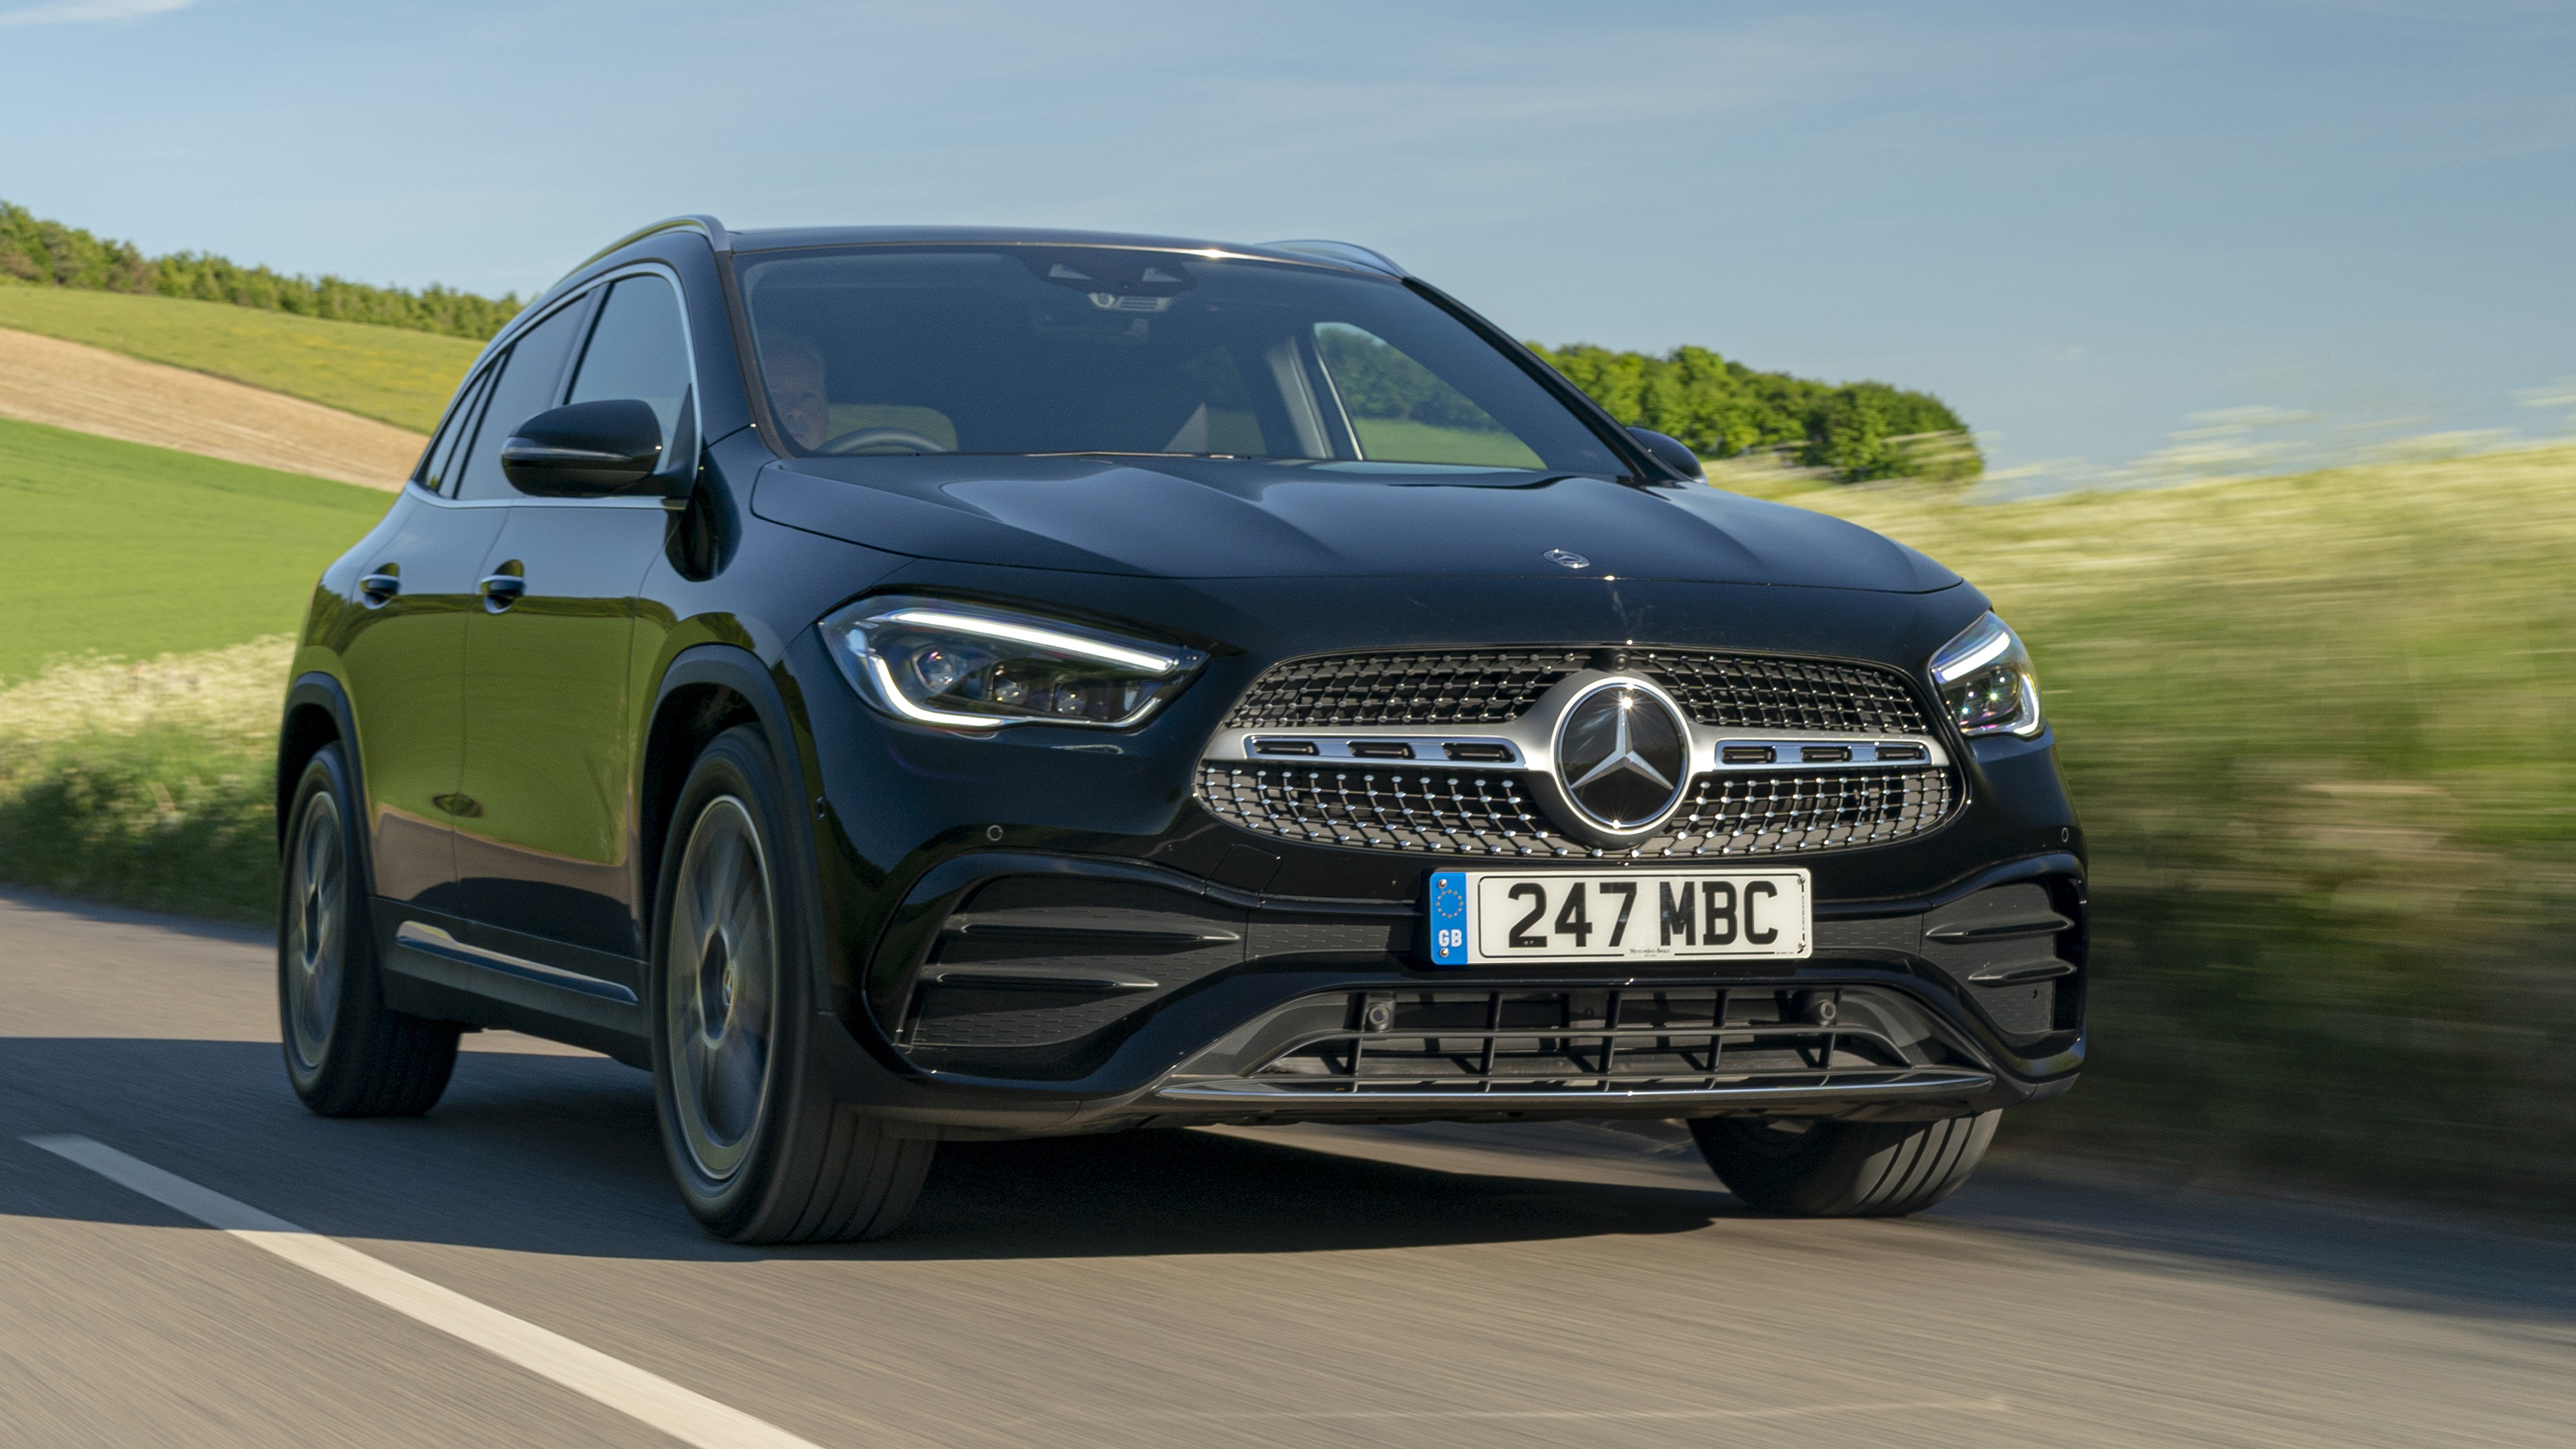 Mercedes Gla Suv Engines Drive Performance 2020 Review Carbuyer